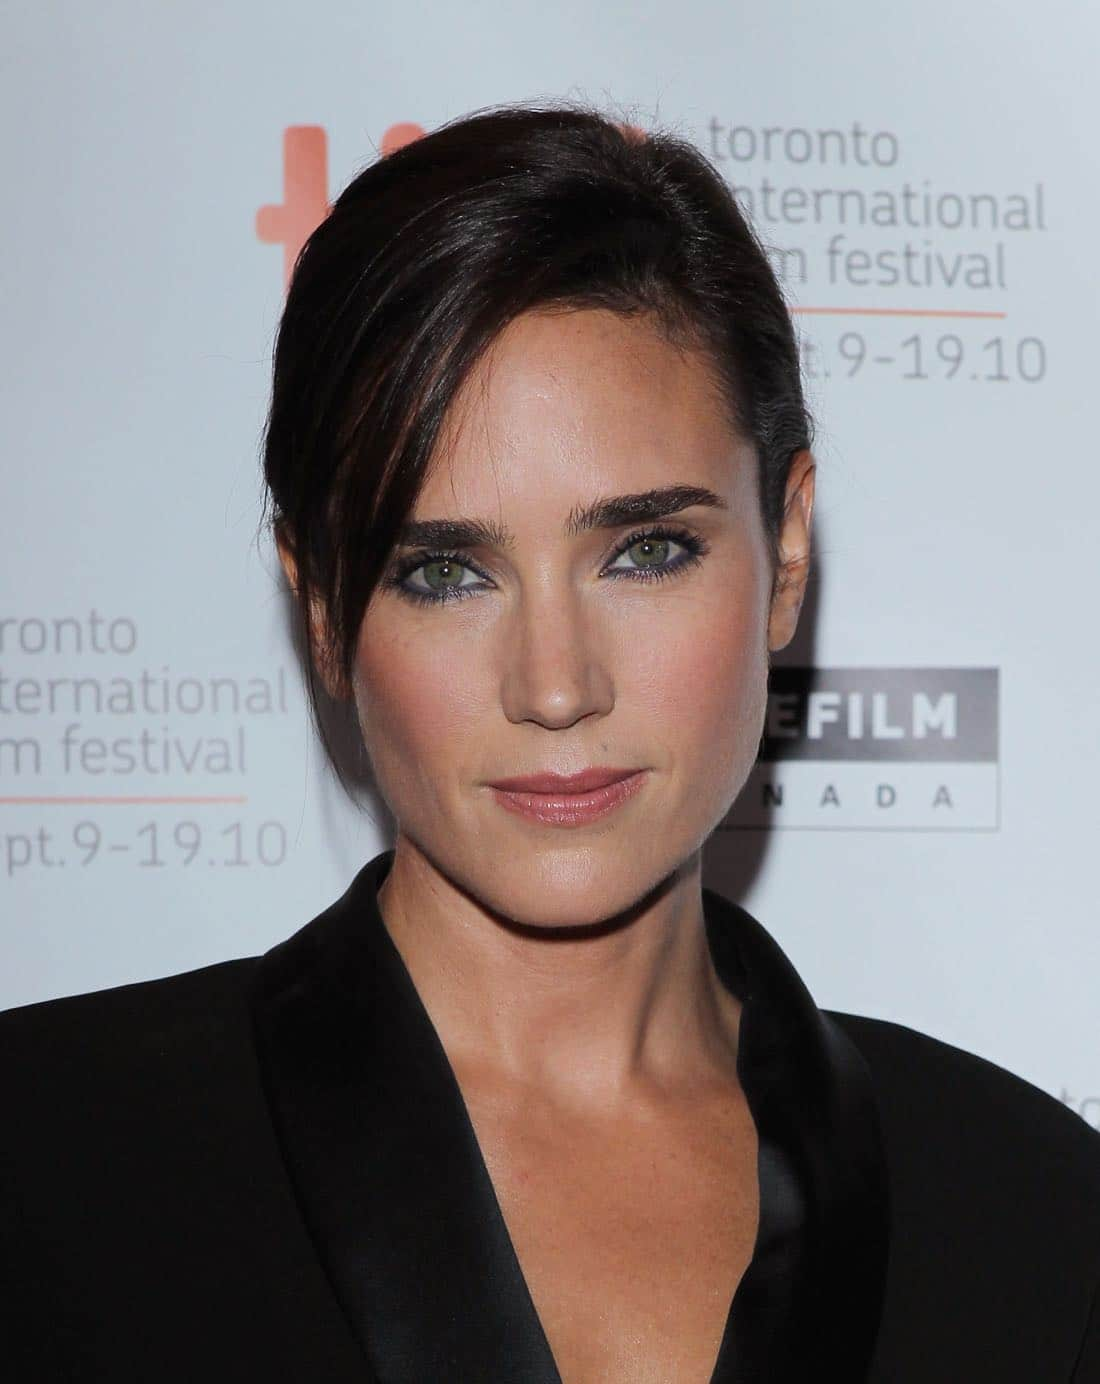 Jennifer Connelly to star in 'Snowpiecer' pilot on TNT